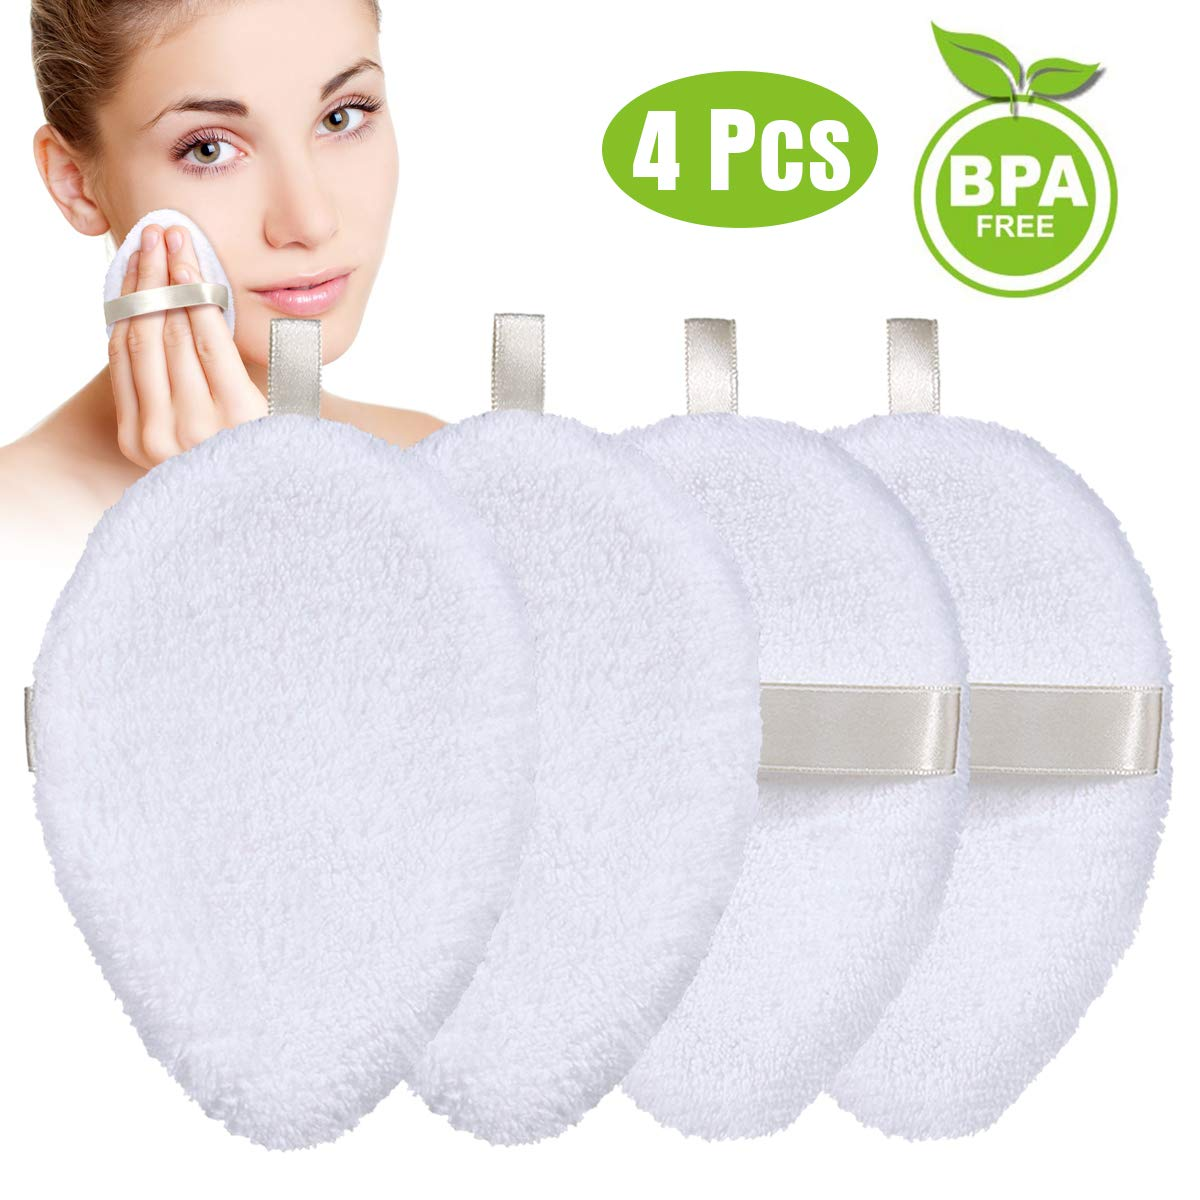 4PCS Soft Bamboo Face Cleansing Pads